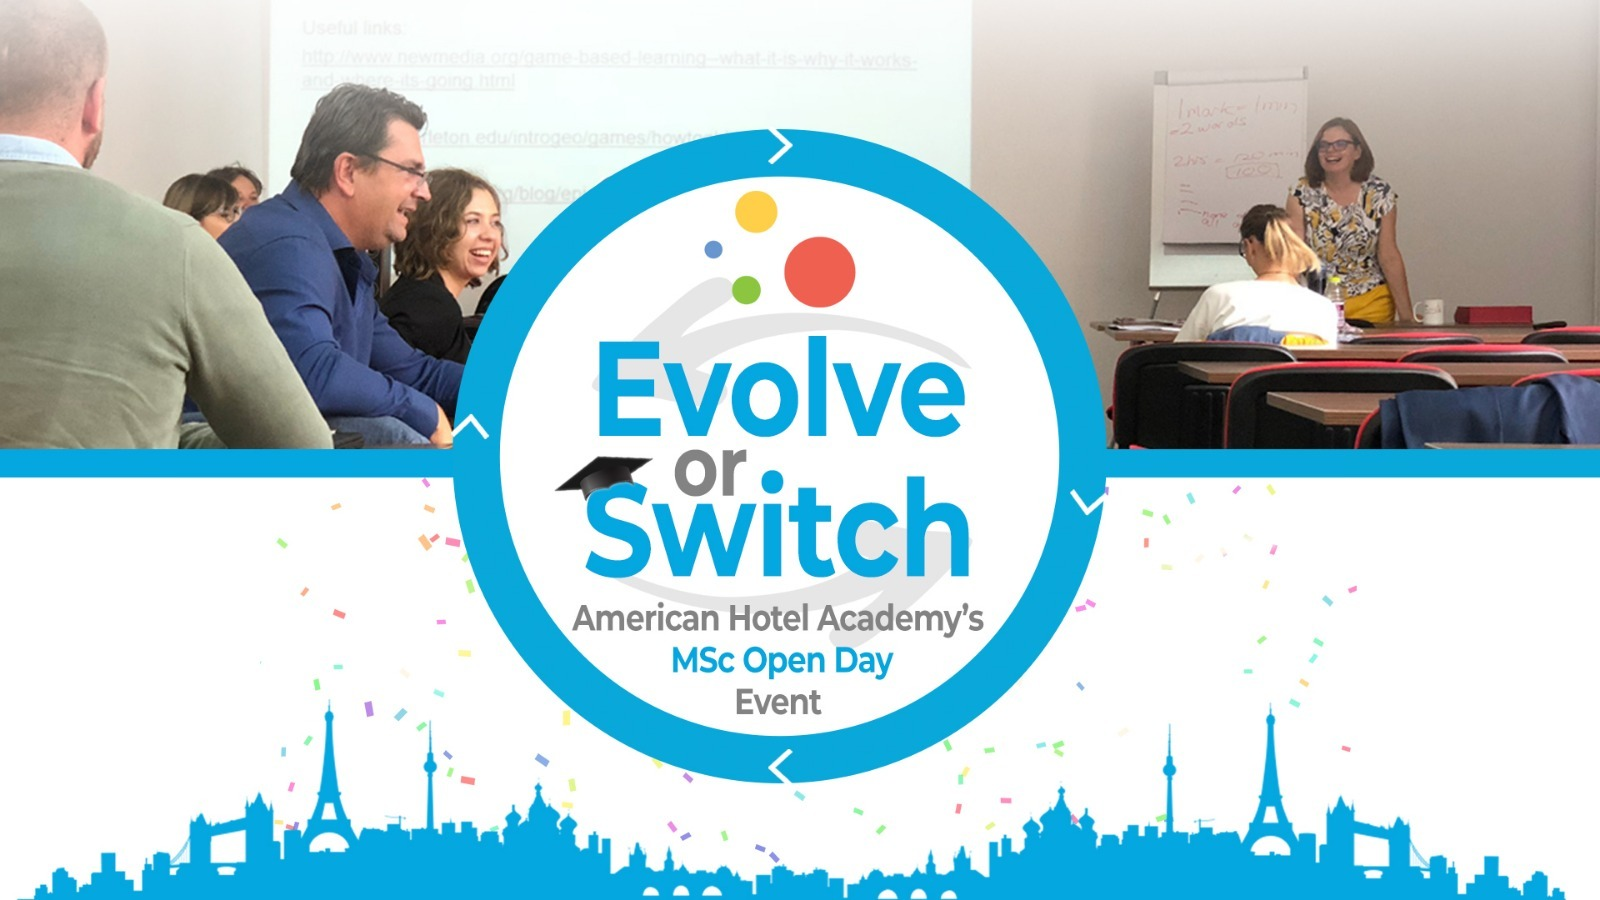 Master's Open Day - Evolve or Switch